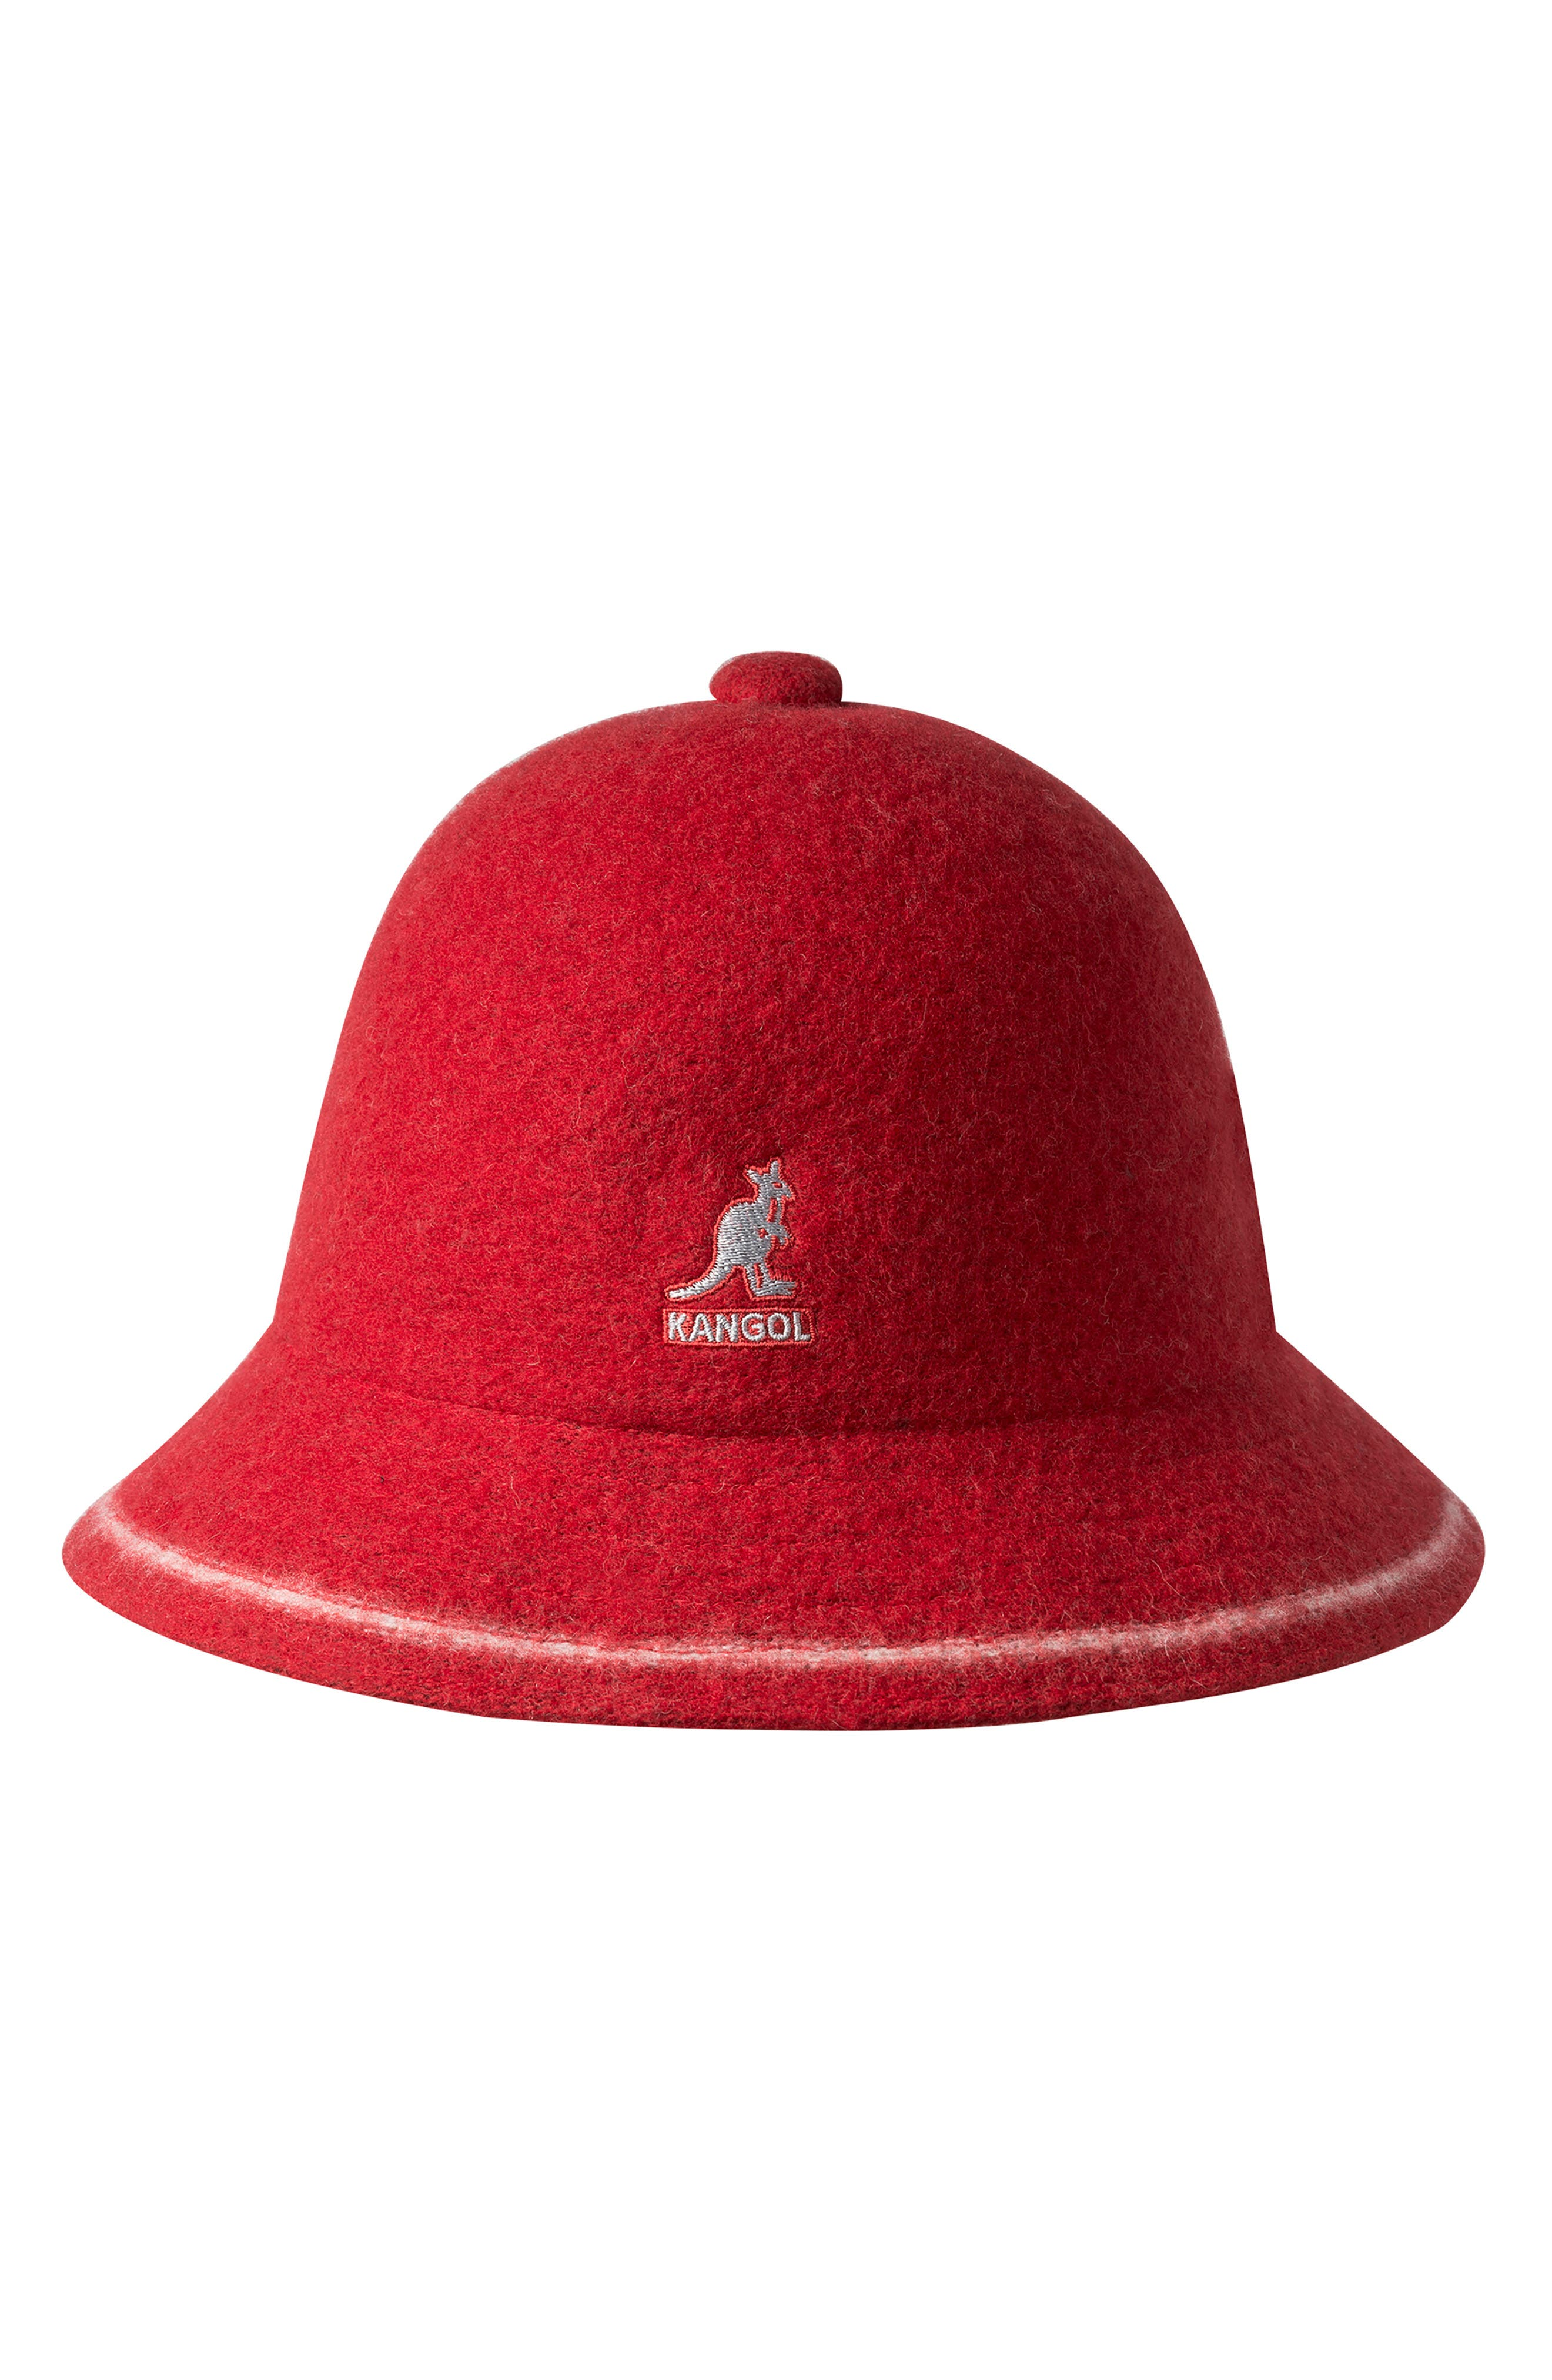 KANGOL Cloche Hat - Red in Red/ Off Wht